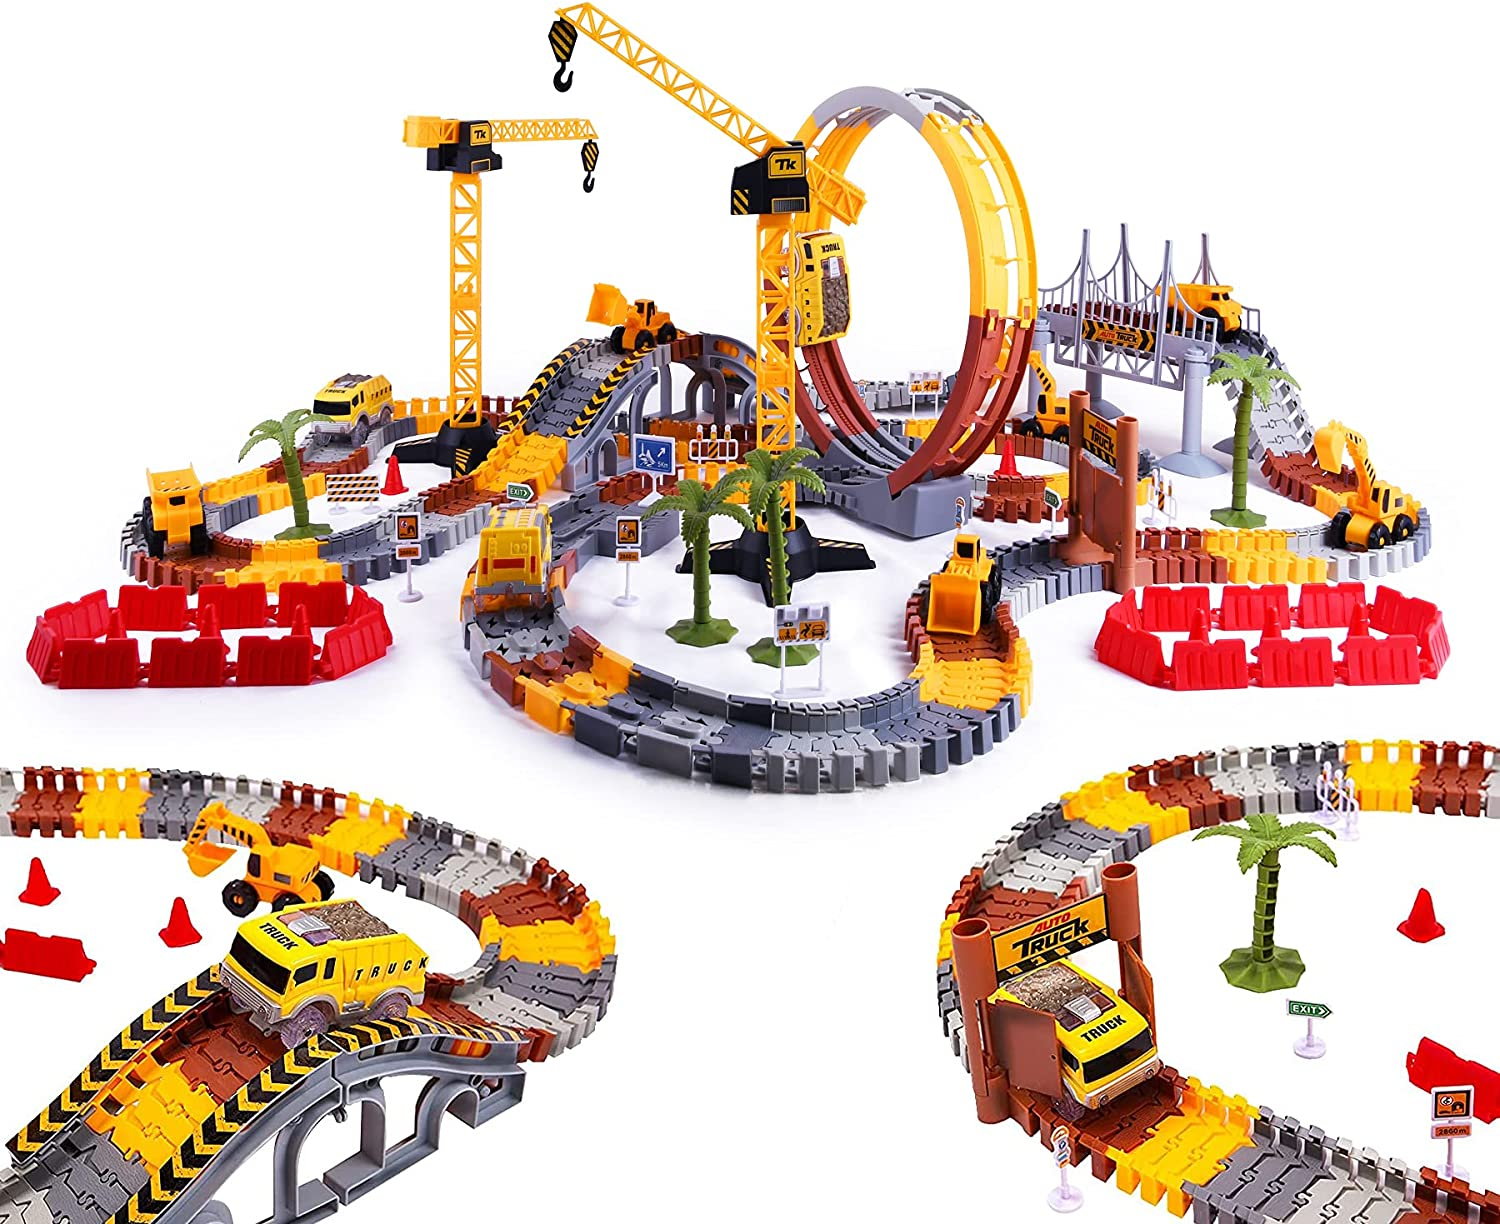 2021 Newest Construction New product! New type Race Track Toy 245PCS Boy for Max 87% OFF Flexible